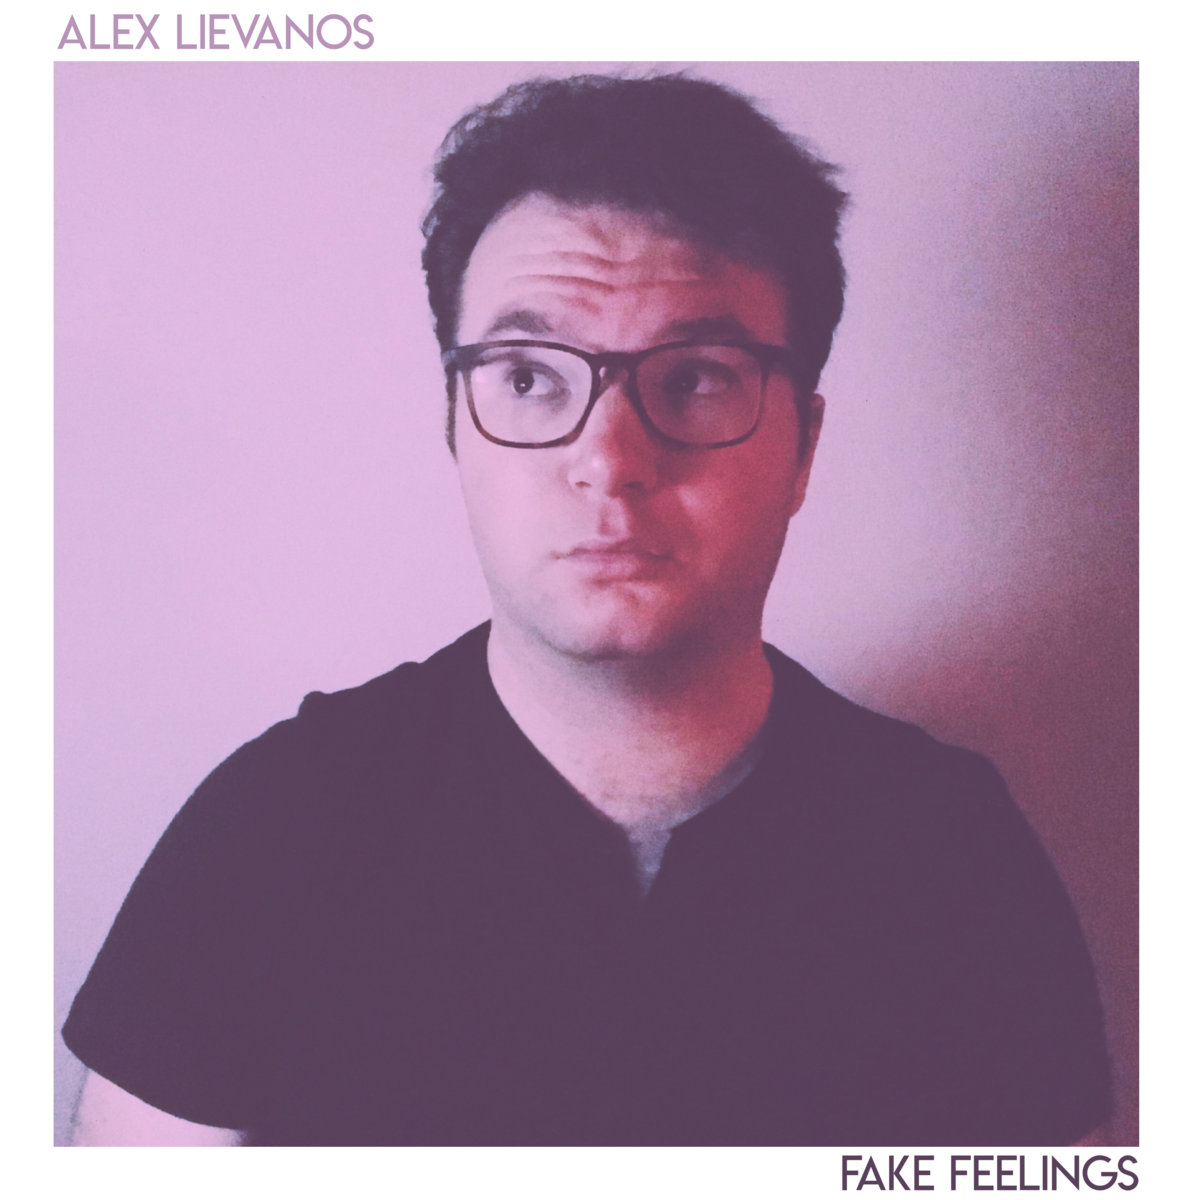 Fake Feelings by Alex Lievanos